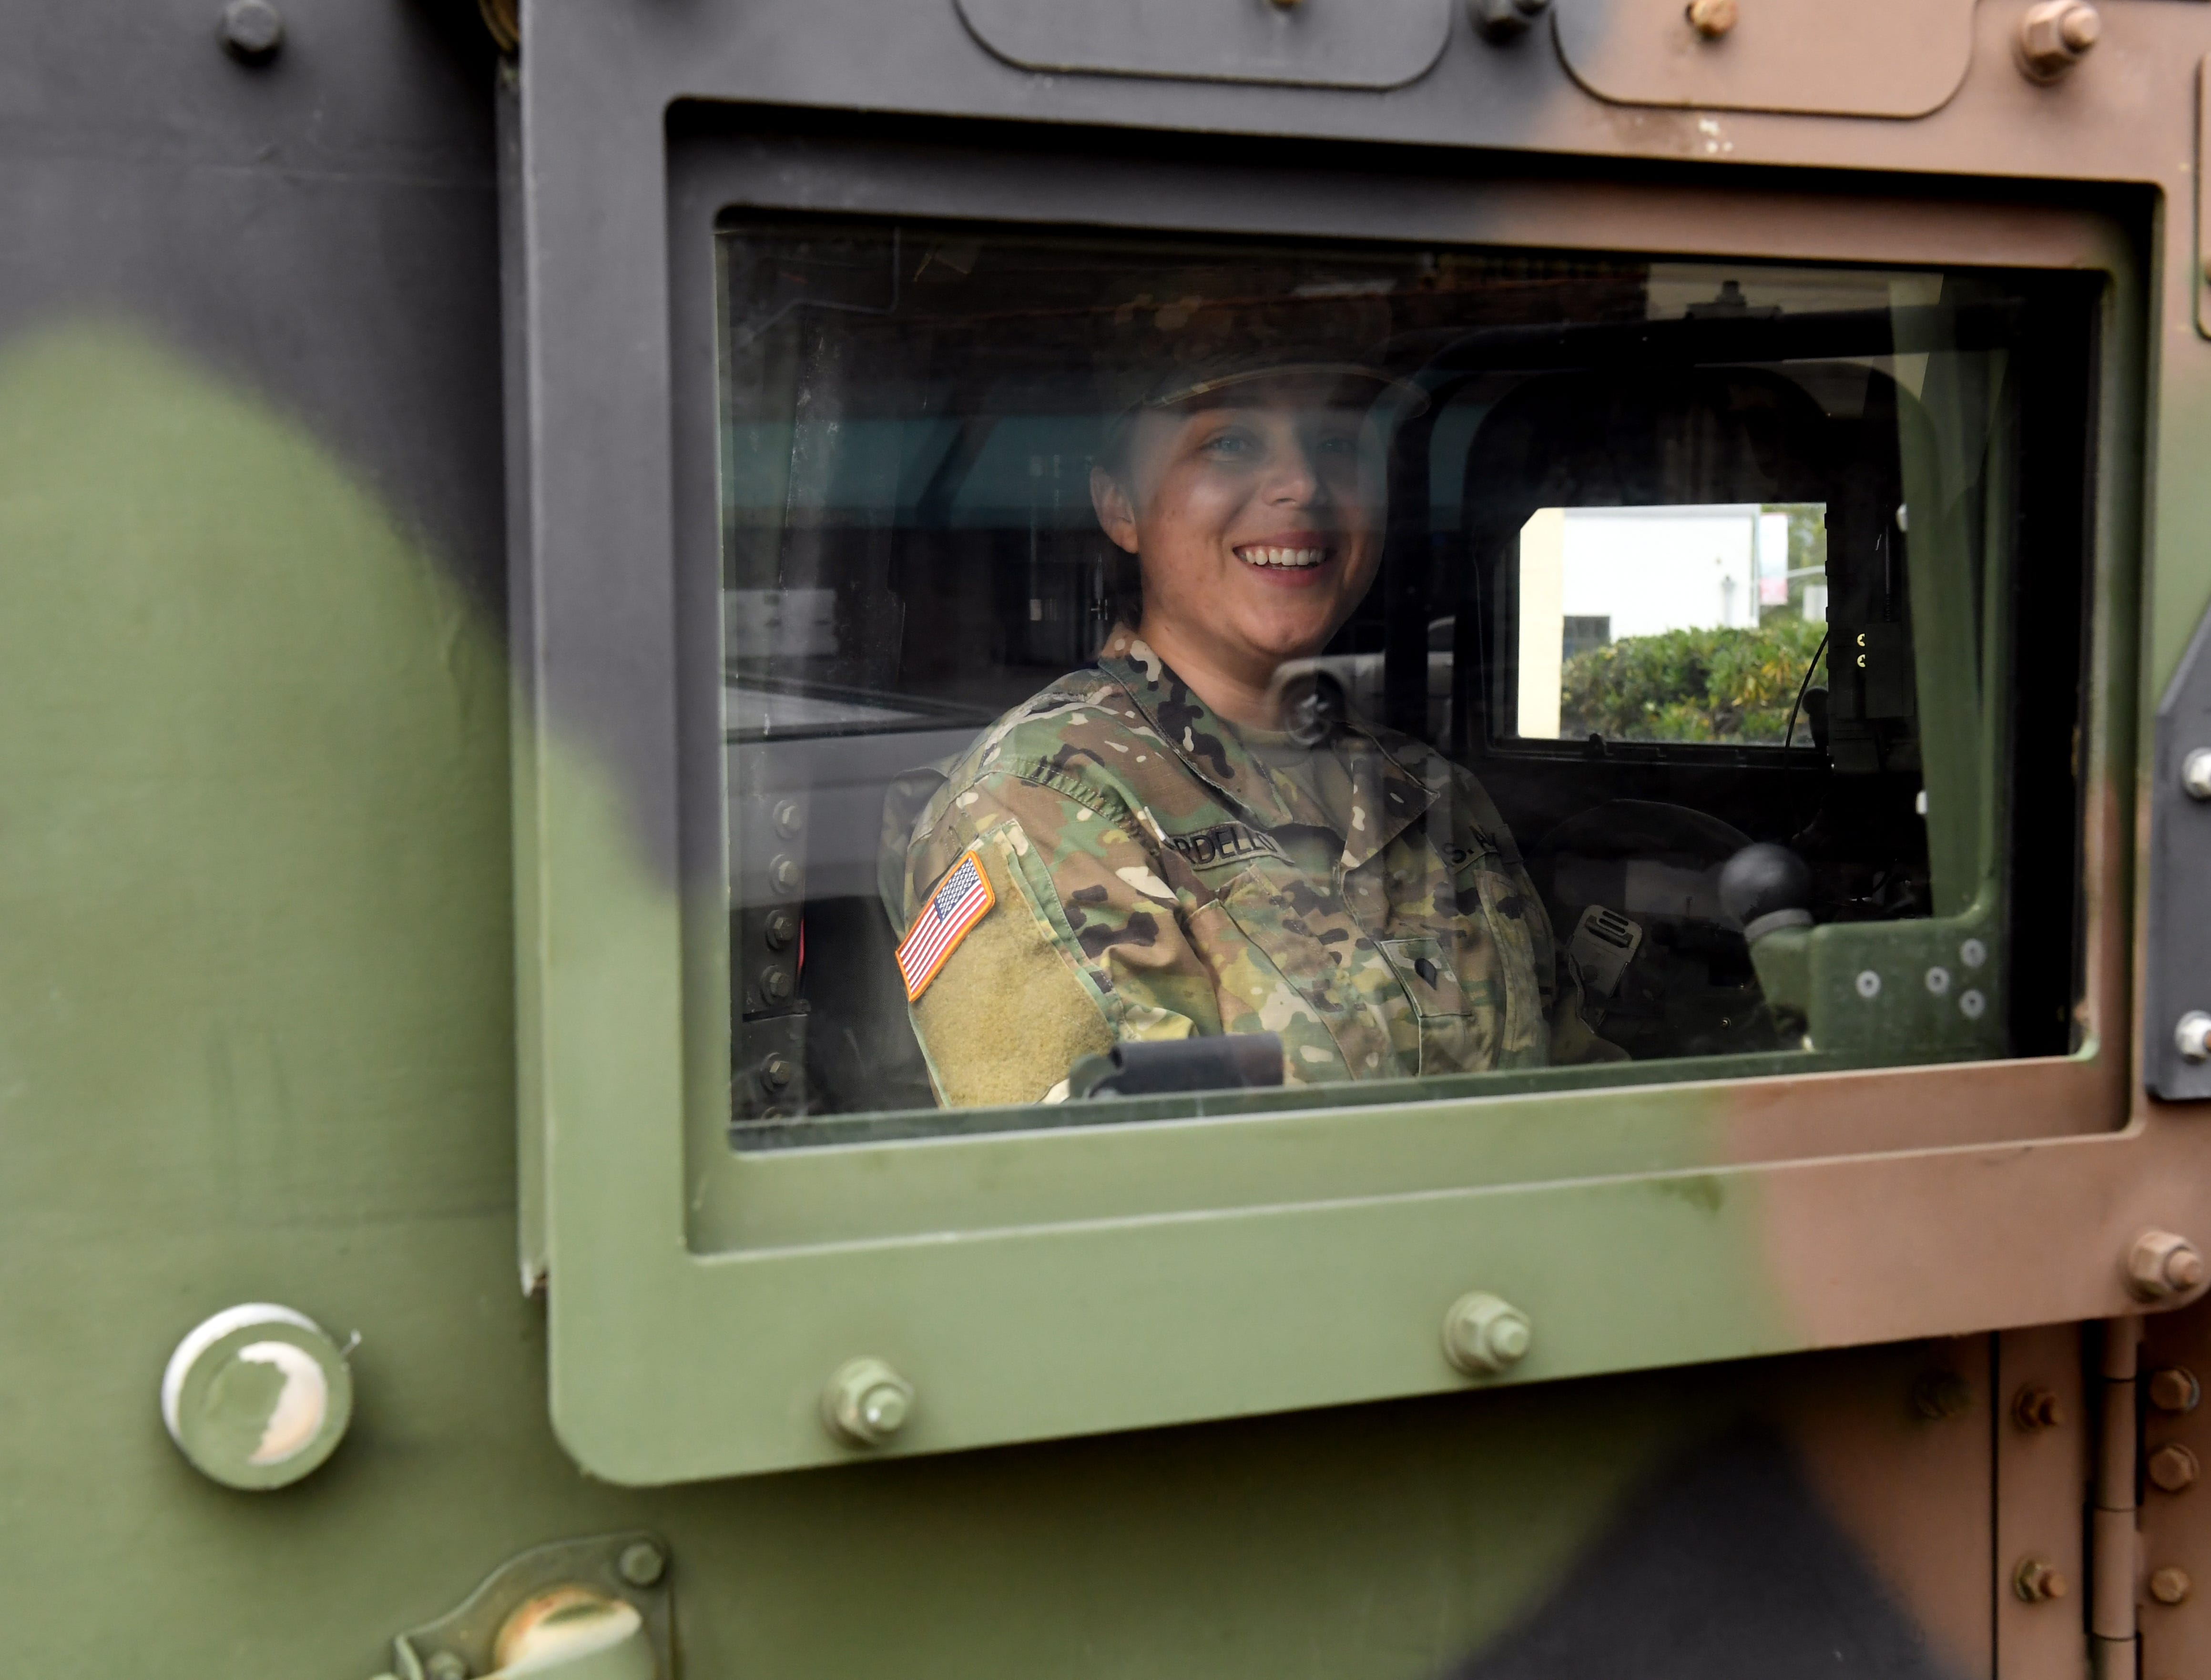 Specialist Alexa Cardello sat in the Humvee outside the event, ready to talk to future servicemembers. April 20, 2019.